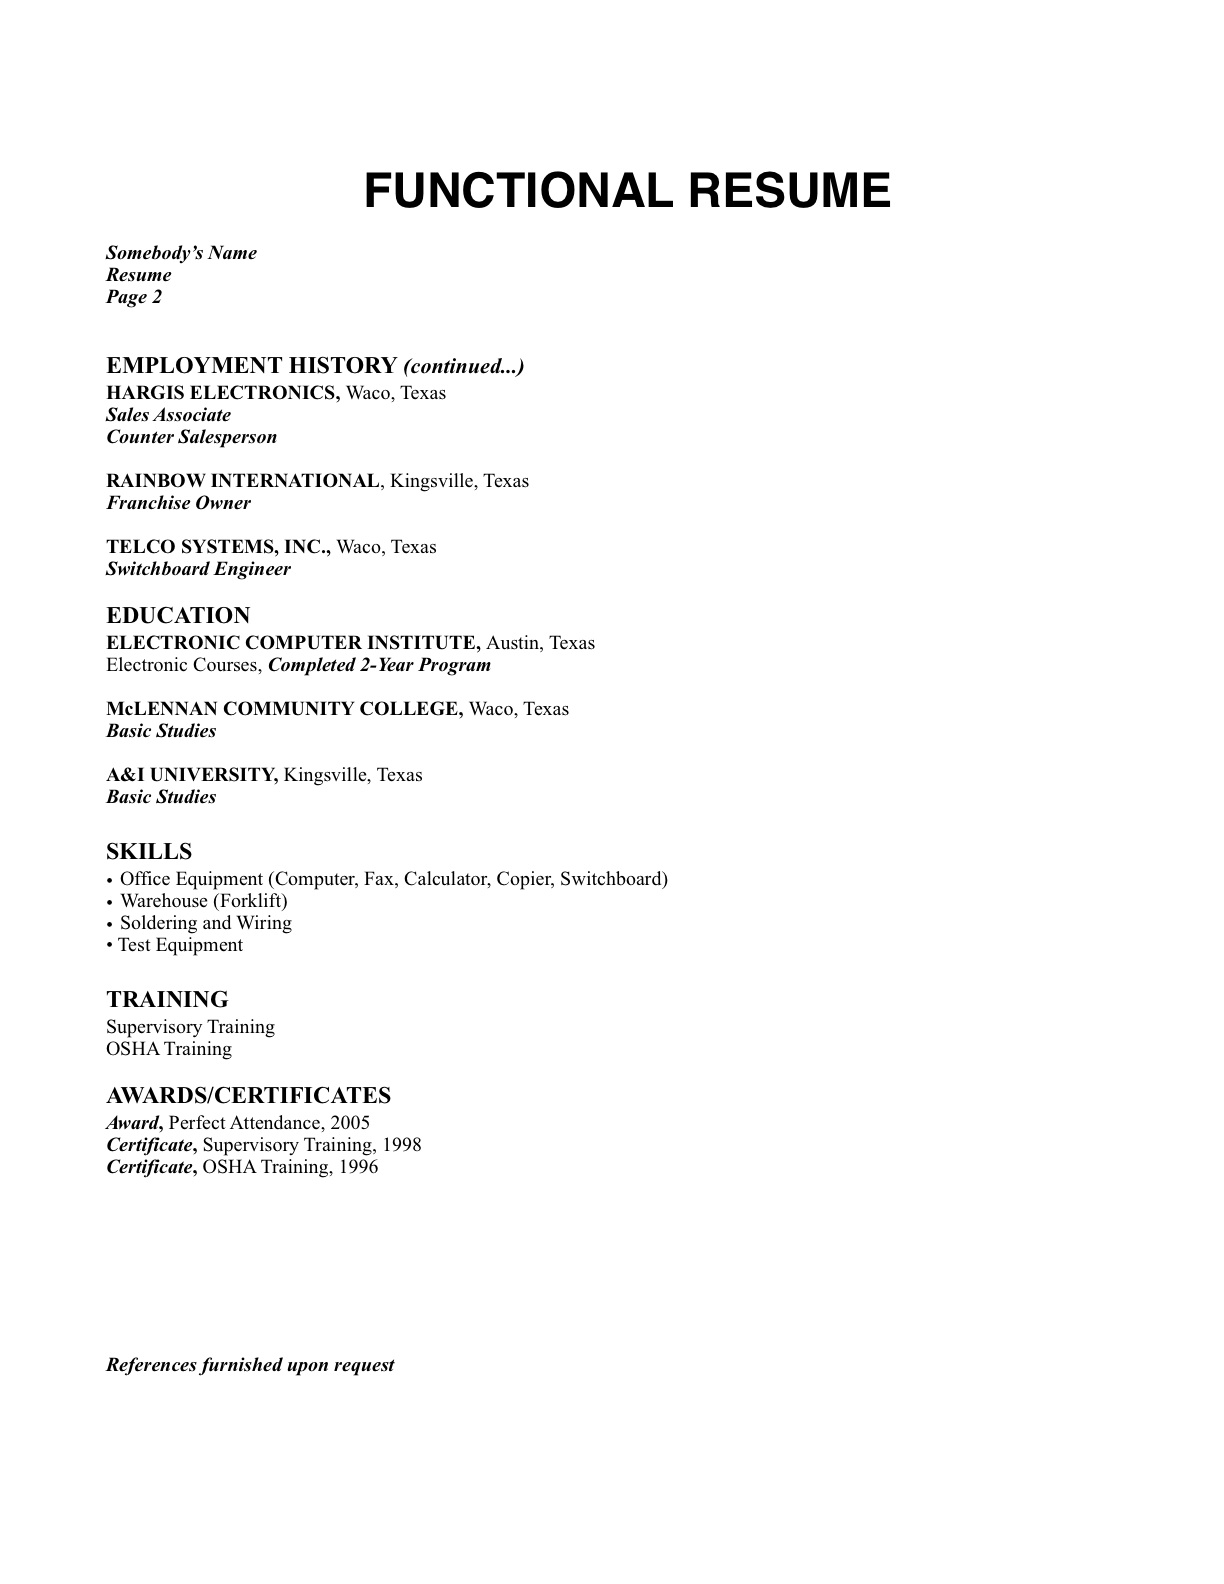 a resume is resume is is a cv a resume is cv and resume the